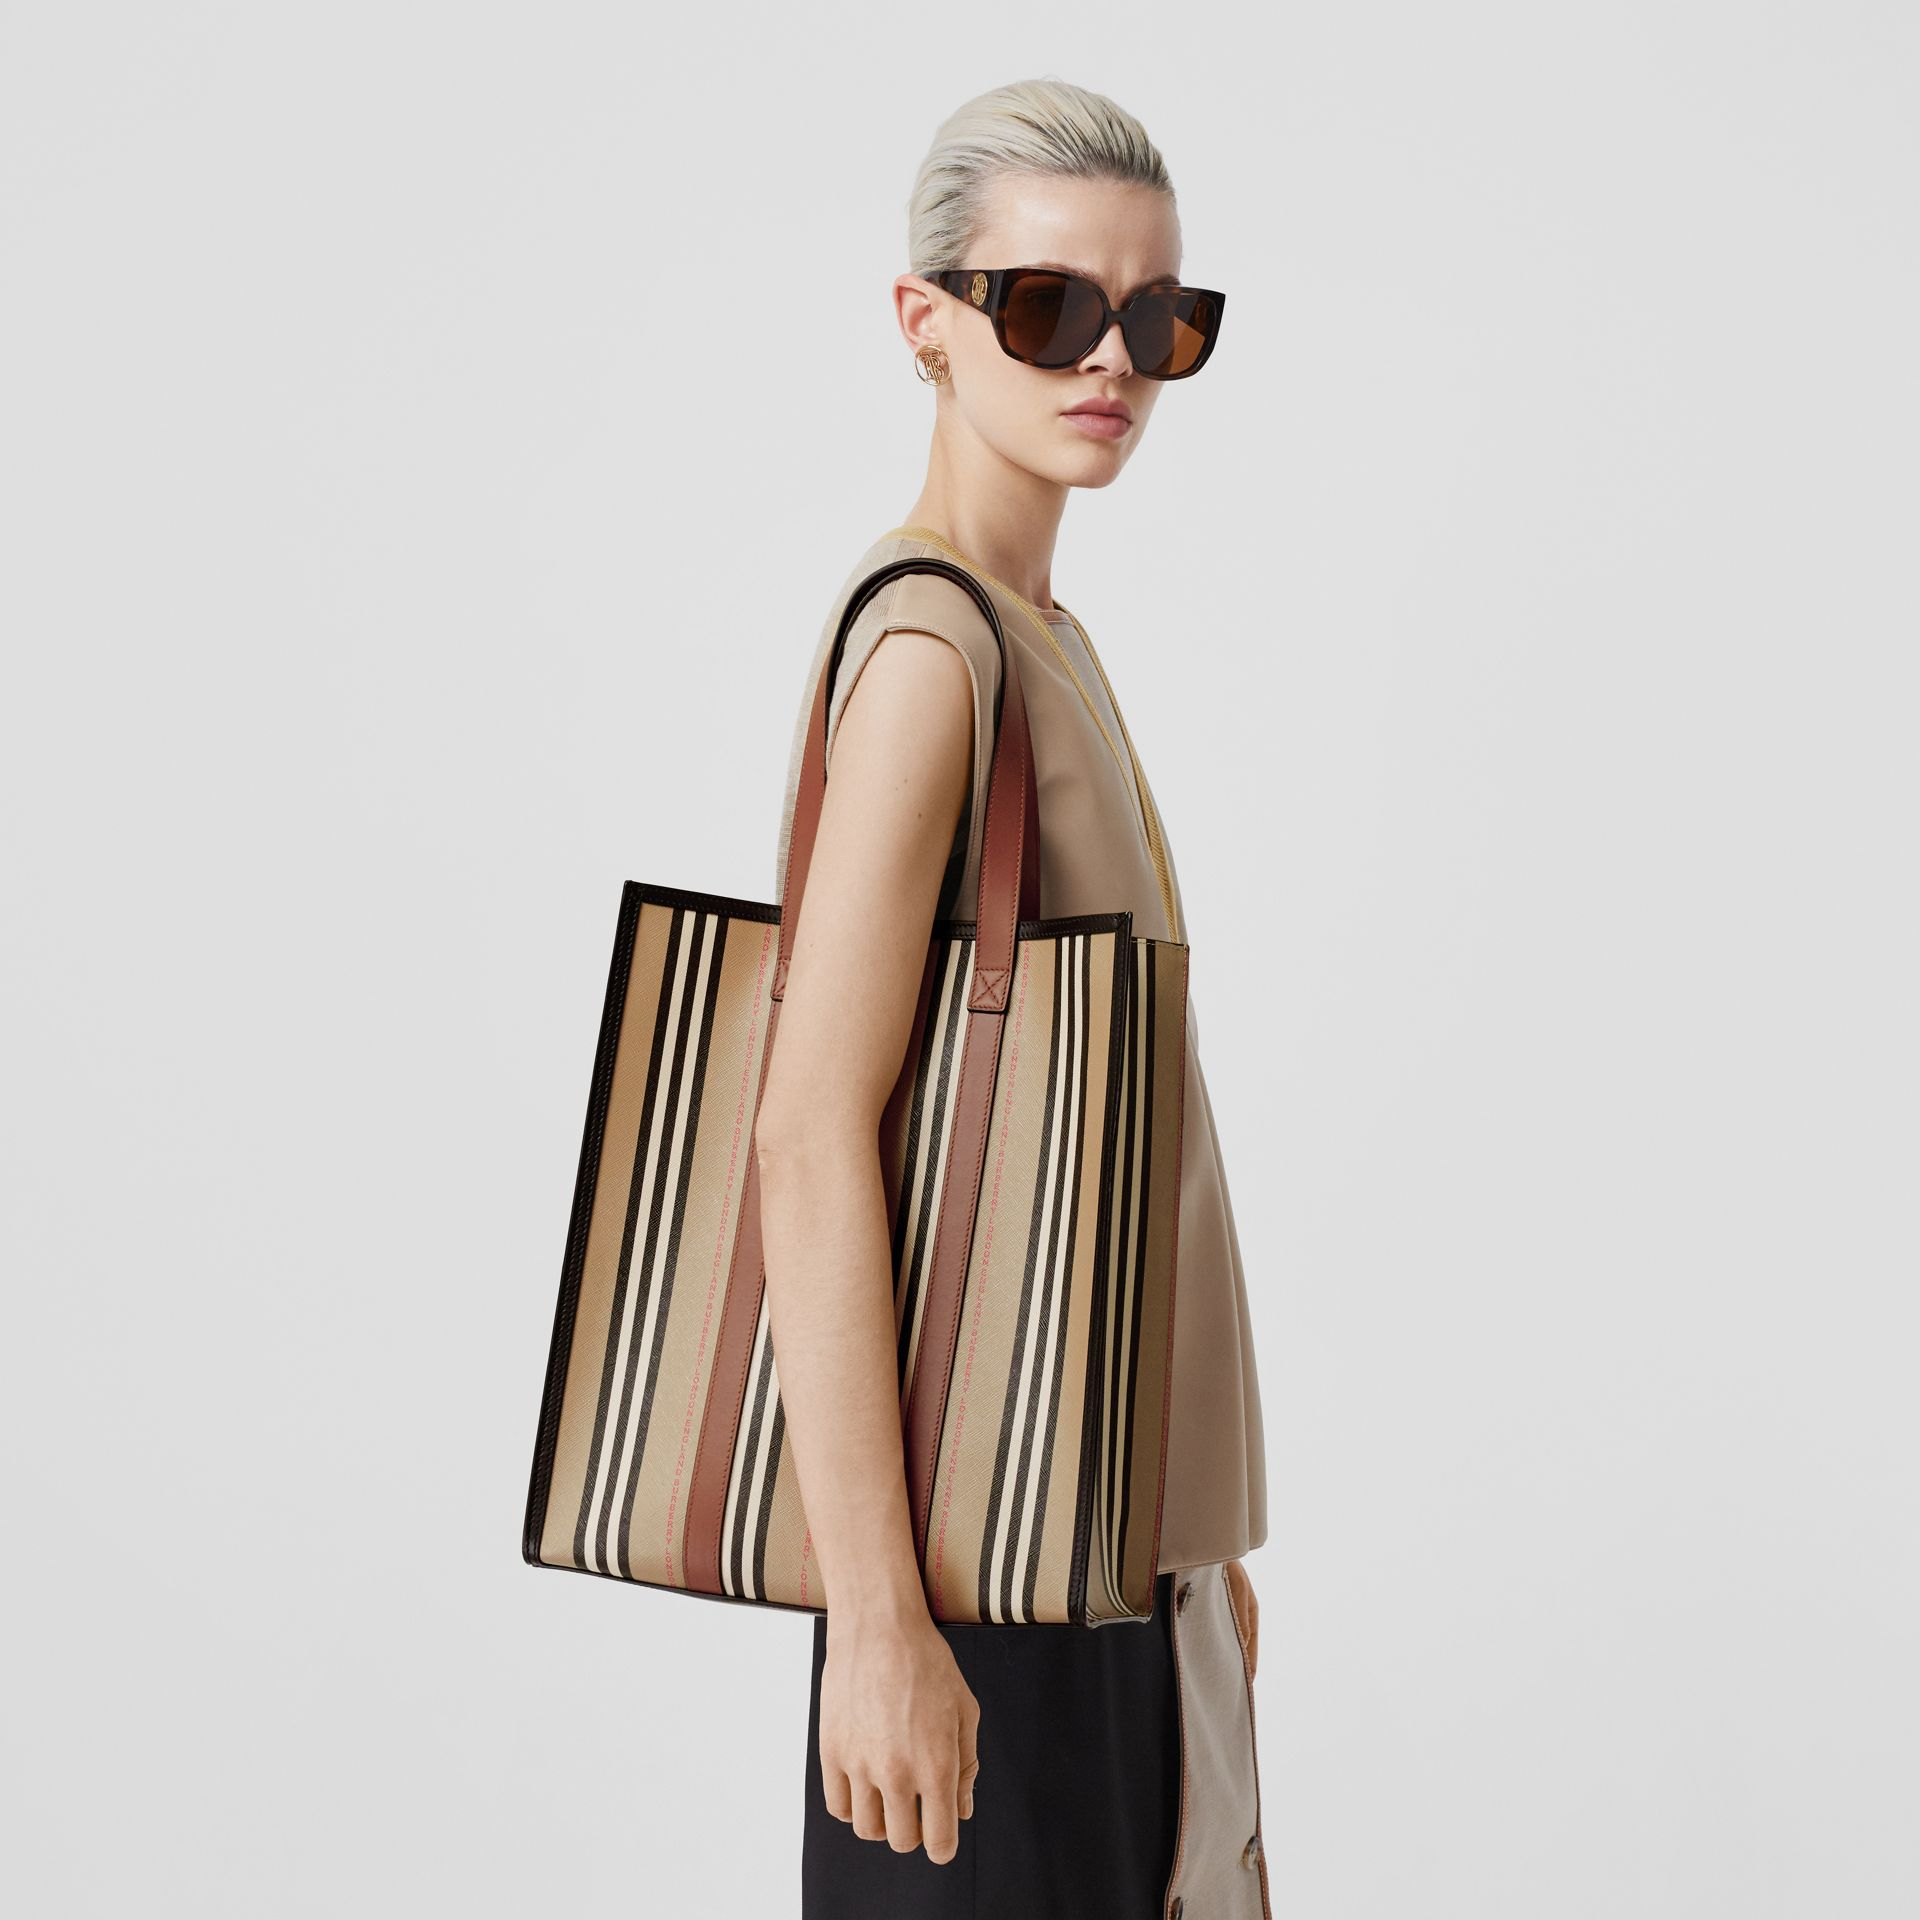 Logo and Stripe E-canvas Portrait Tote Bag in Tan/archive Beige - Women | Burberry Hong Kong S.A.R - gallery image 2